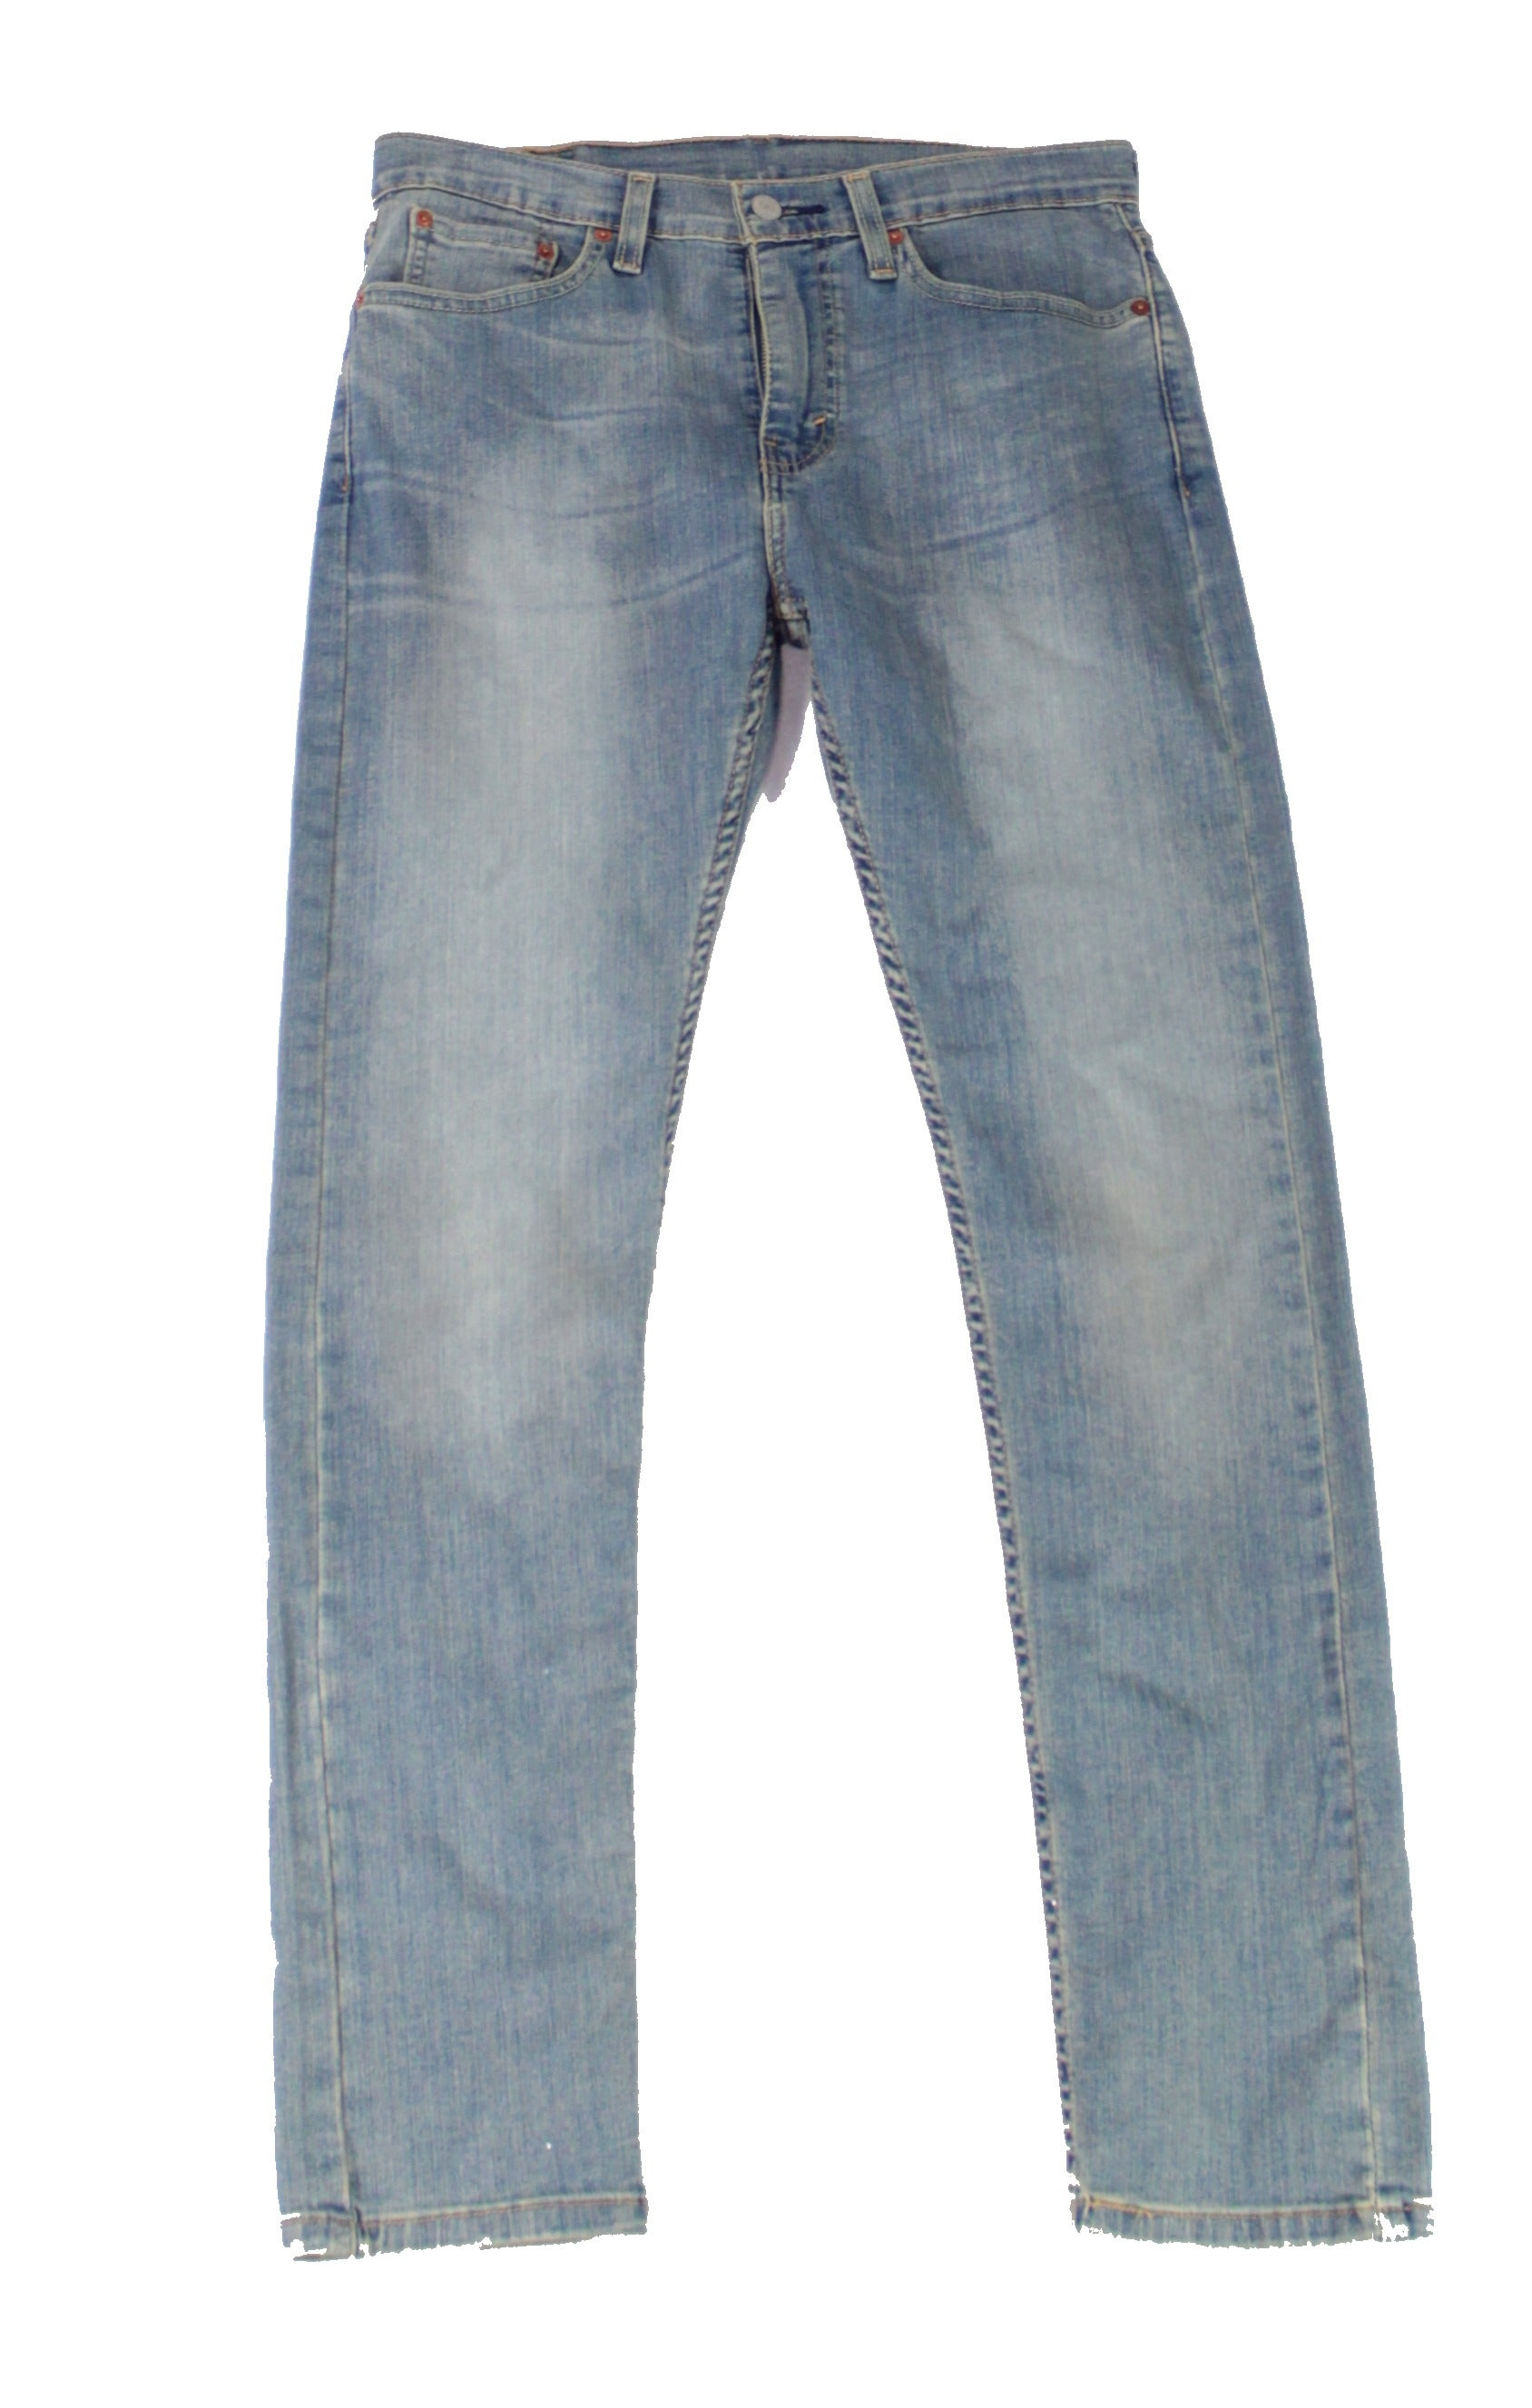 Levi's Mens Jeans Blue Size 31X32 510 Skinny Zip-Fly Washed Stretch